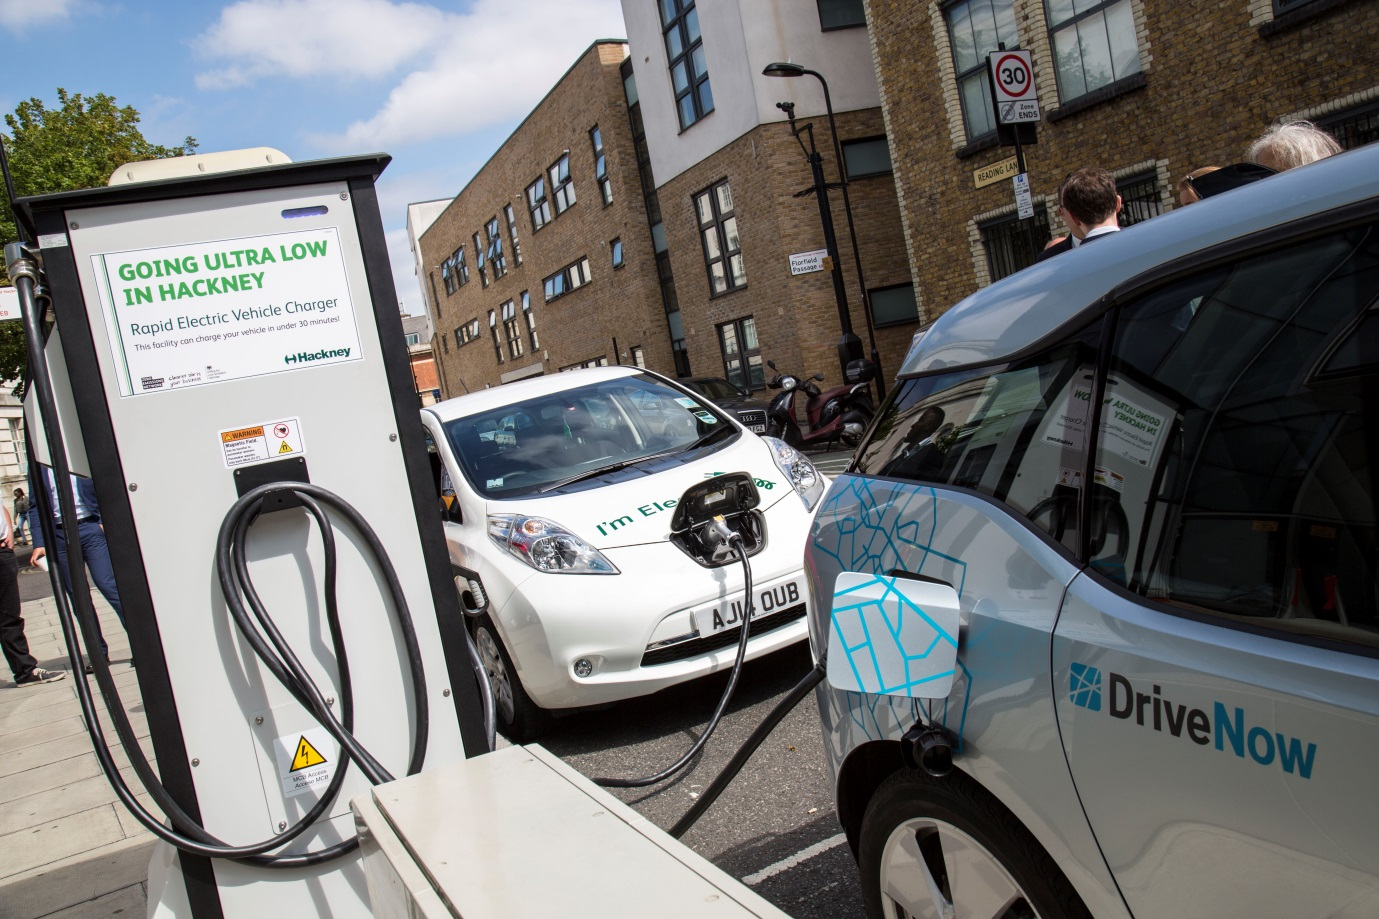 Rapid Electric Vehicle Charging Point in Hackney